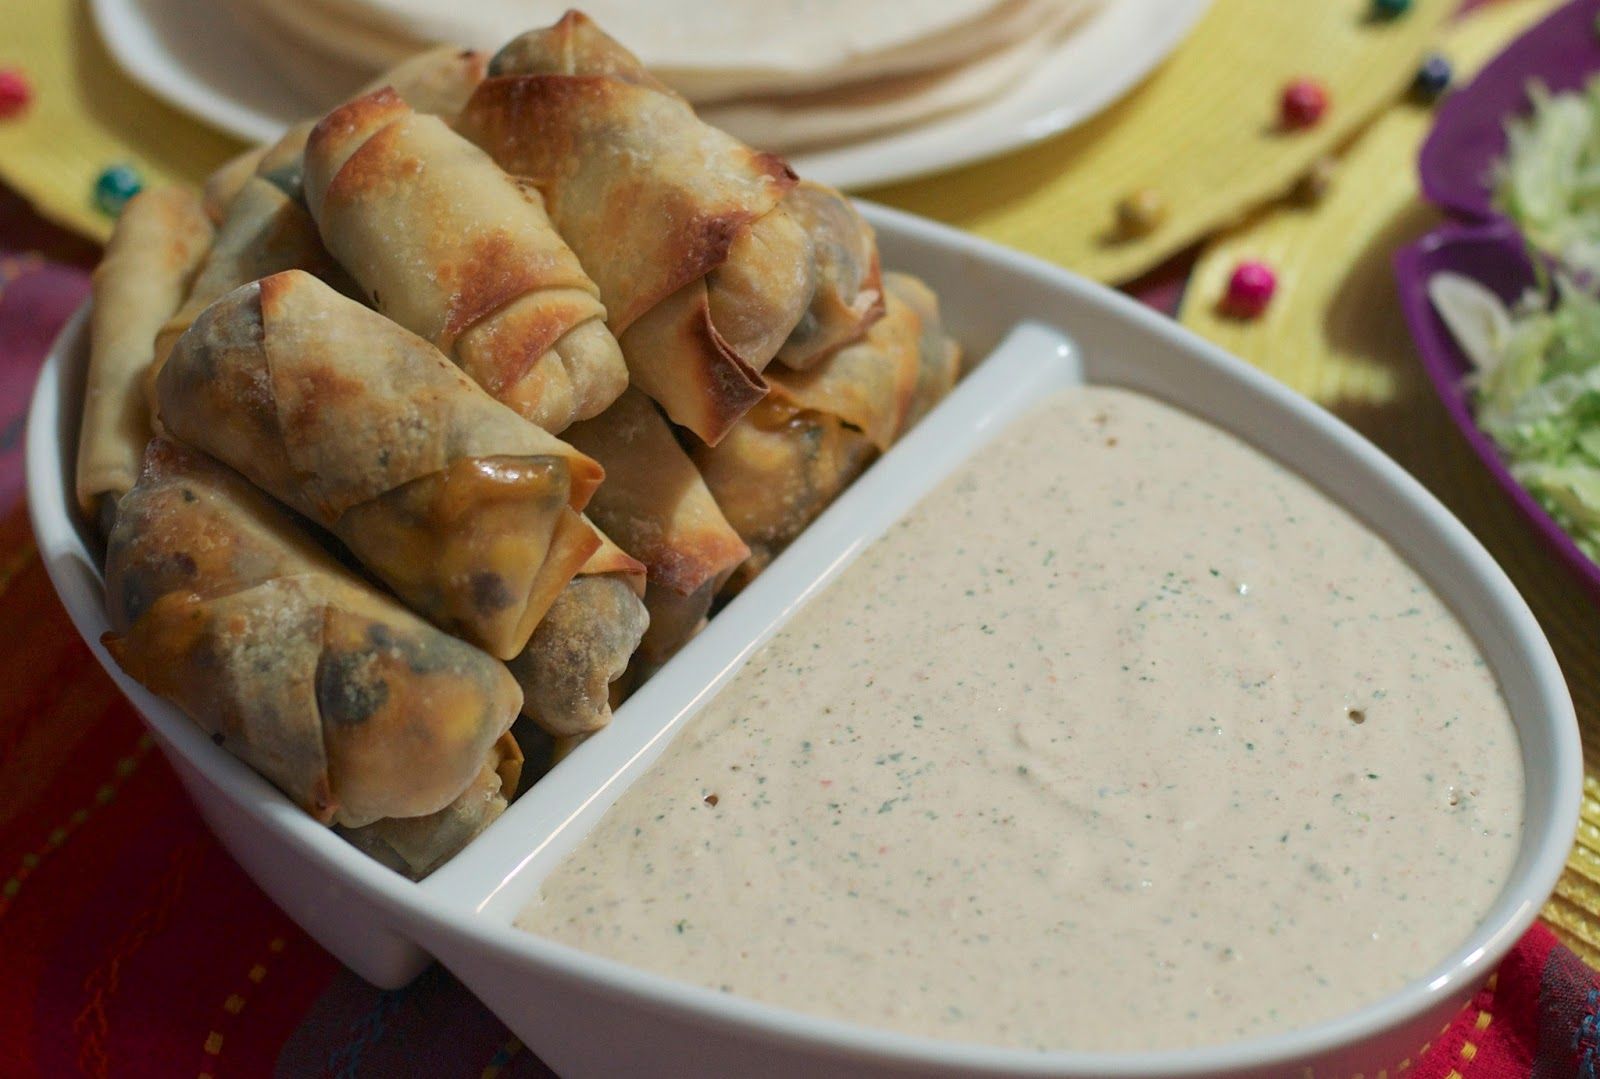 ... by Alicia Rose: Southwestern Egg Rolls with Southwest Ranch Dip